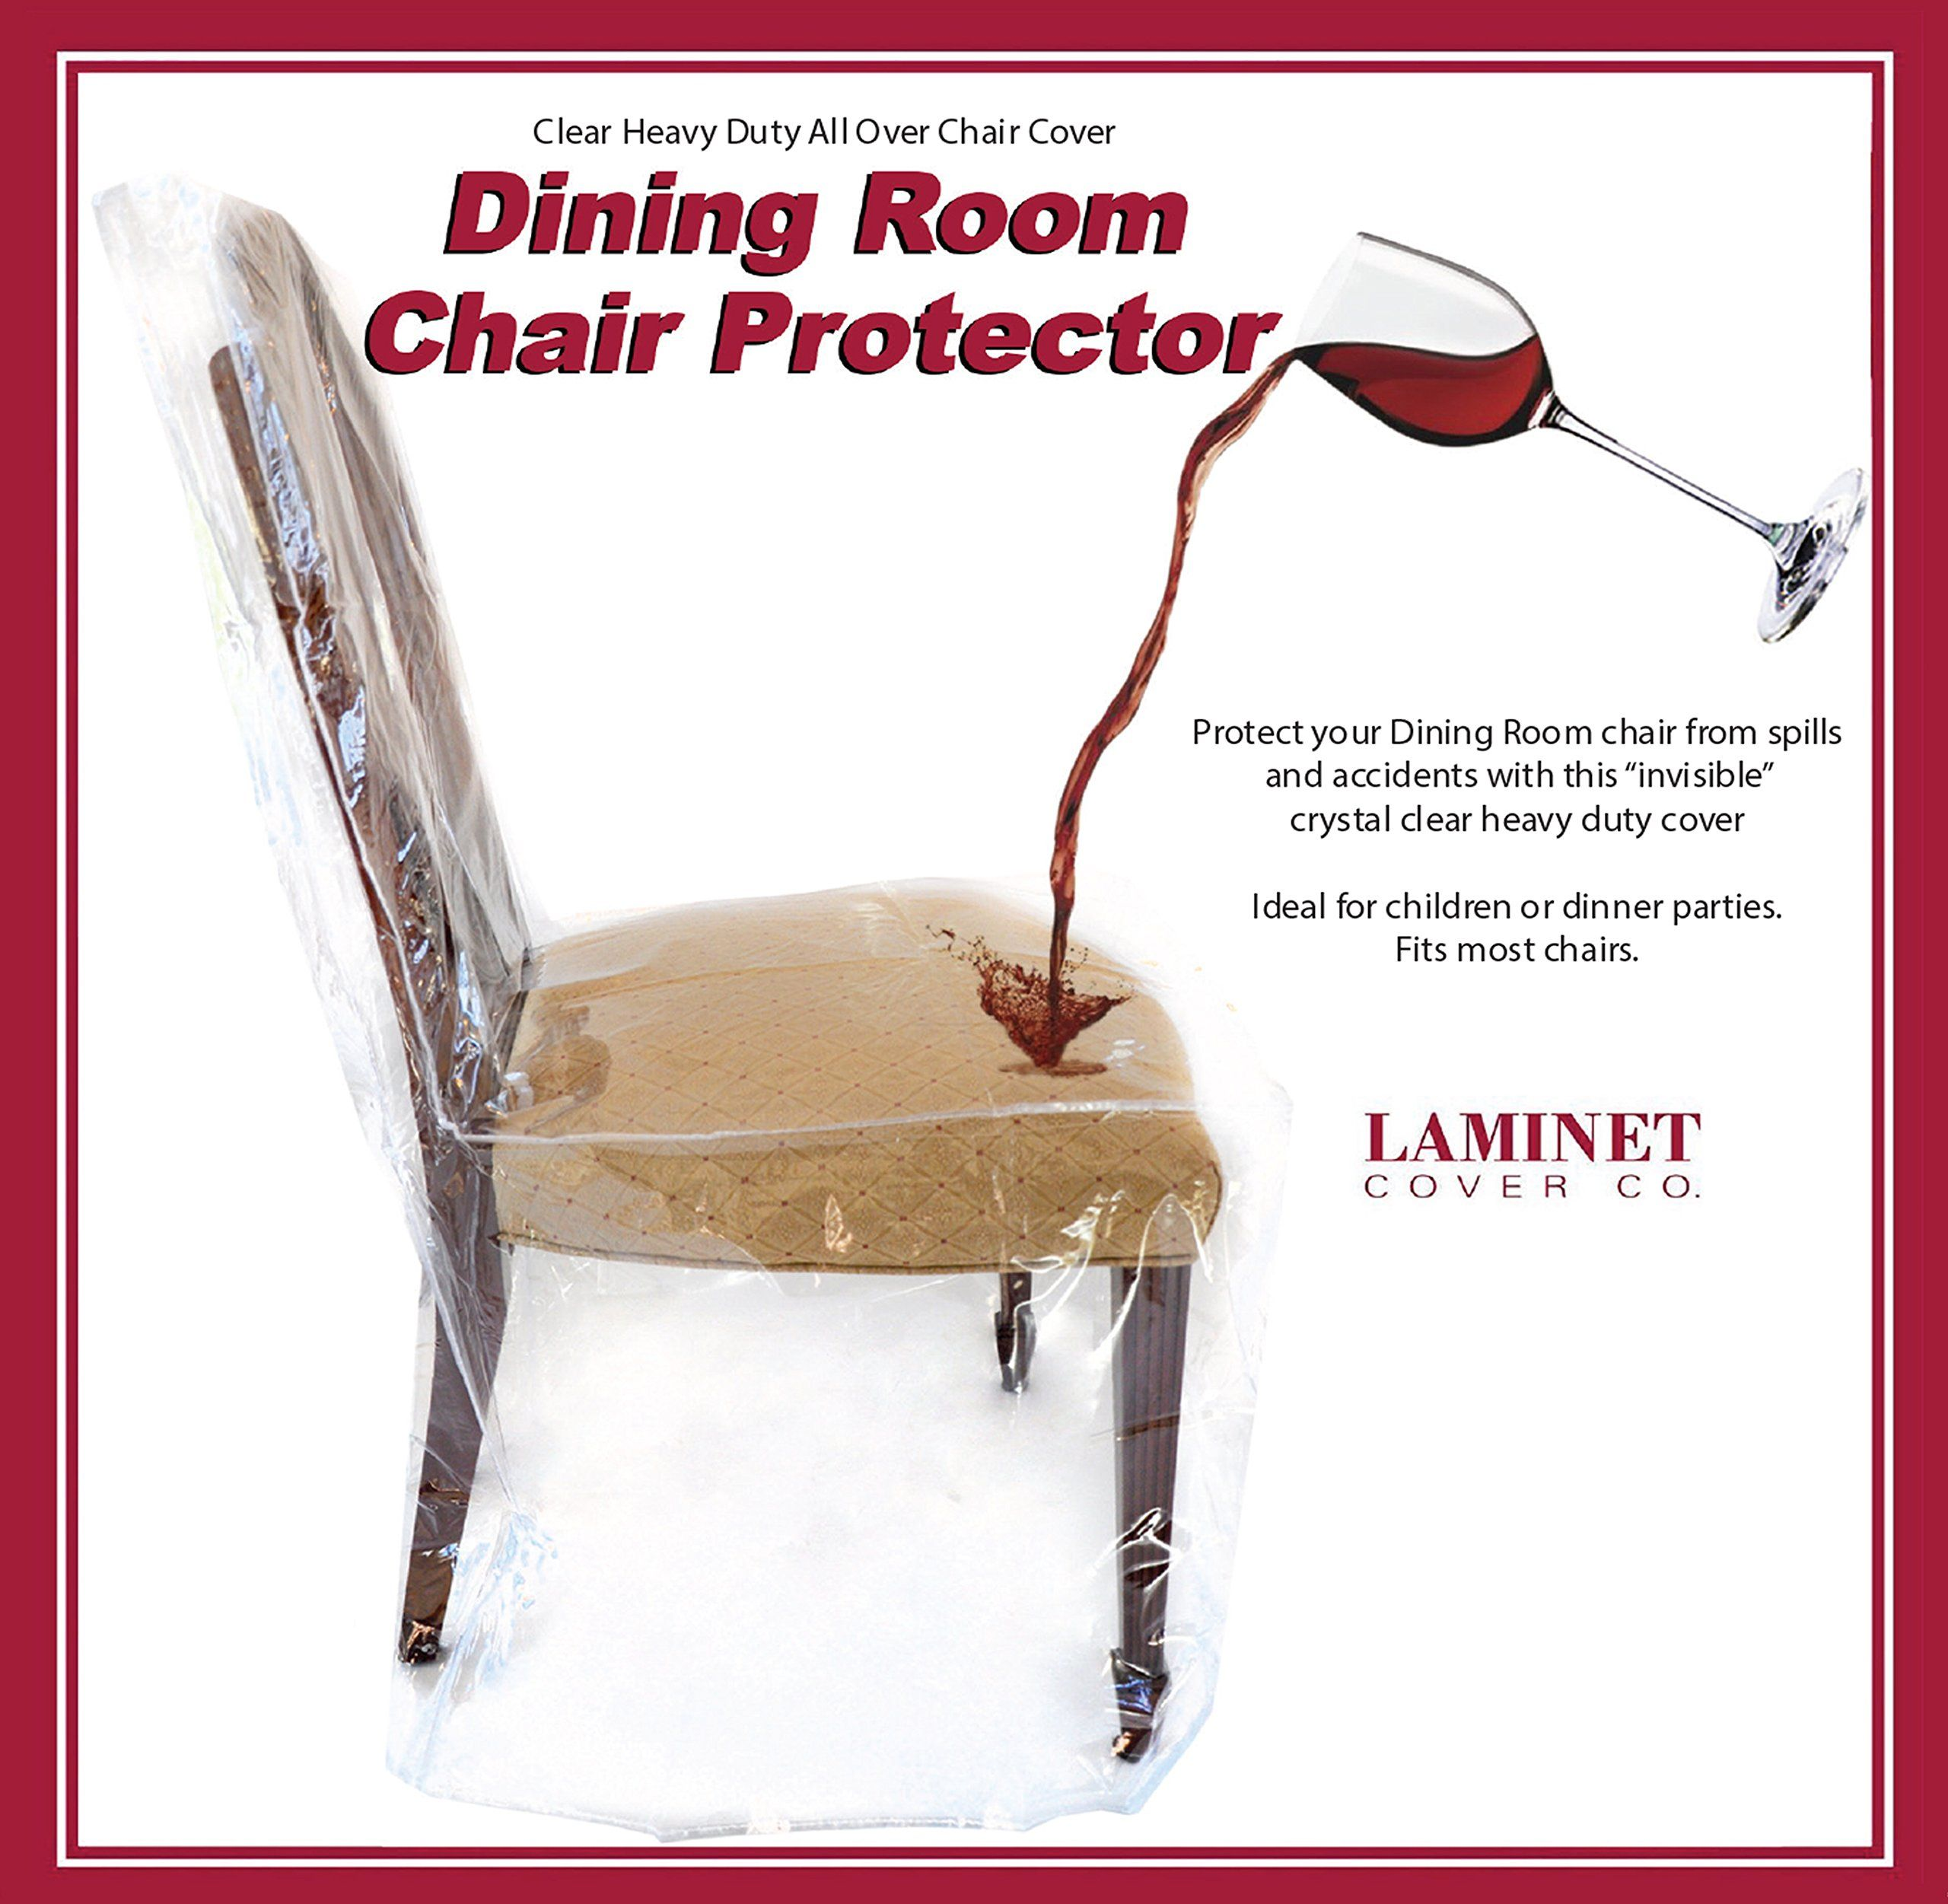 Laminet Dining Room Chair Protector Set Of 1 To View Further For This Item